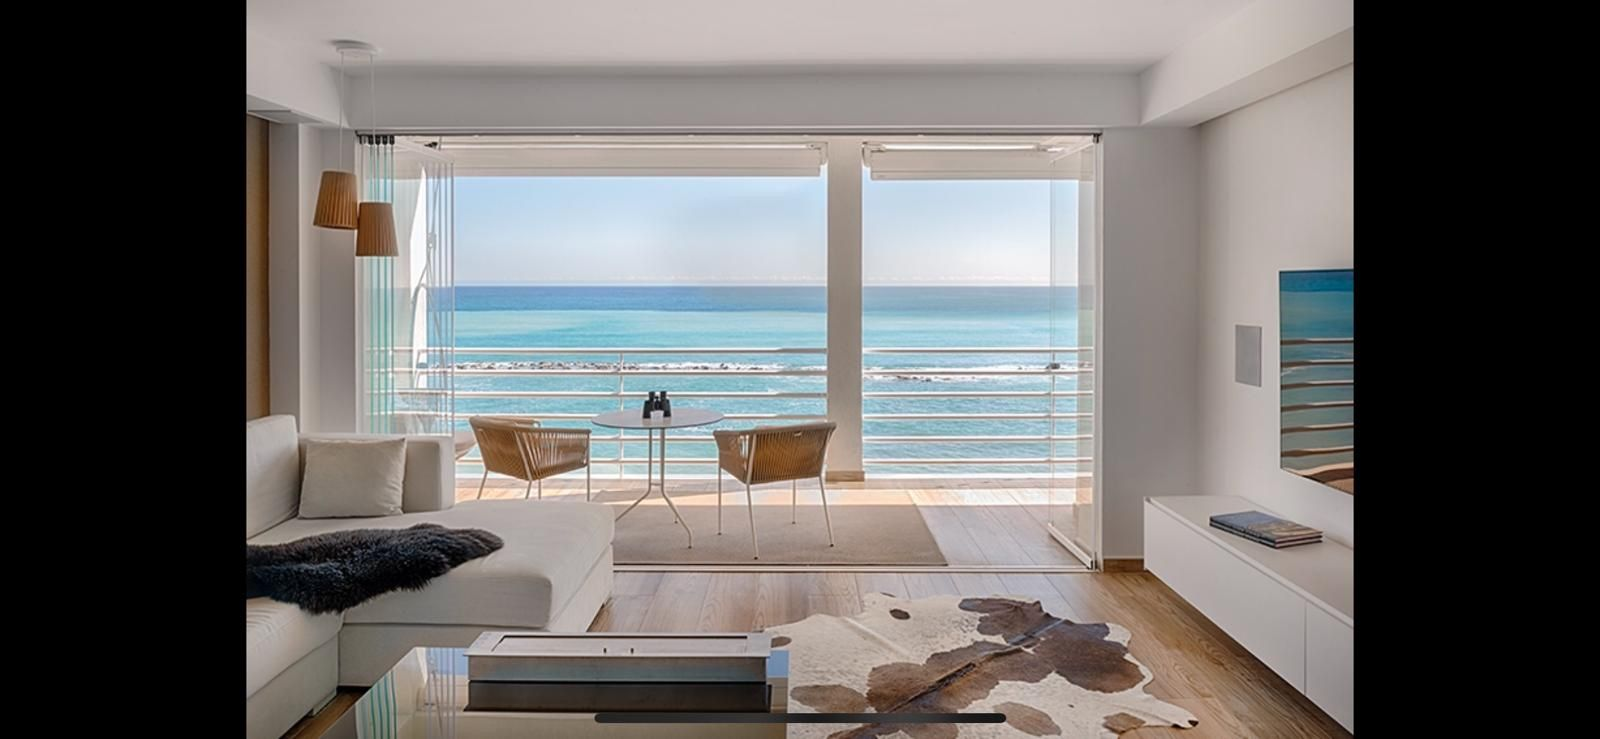 Flat in Altea, Paseo Maritimo, for rent